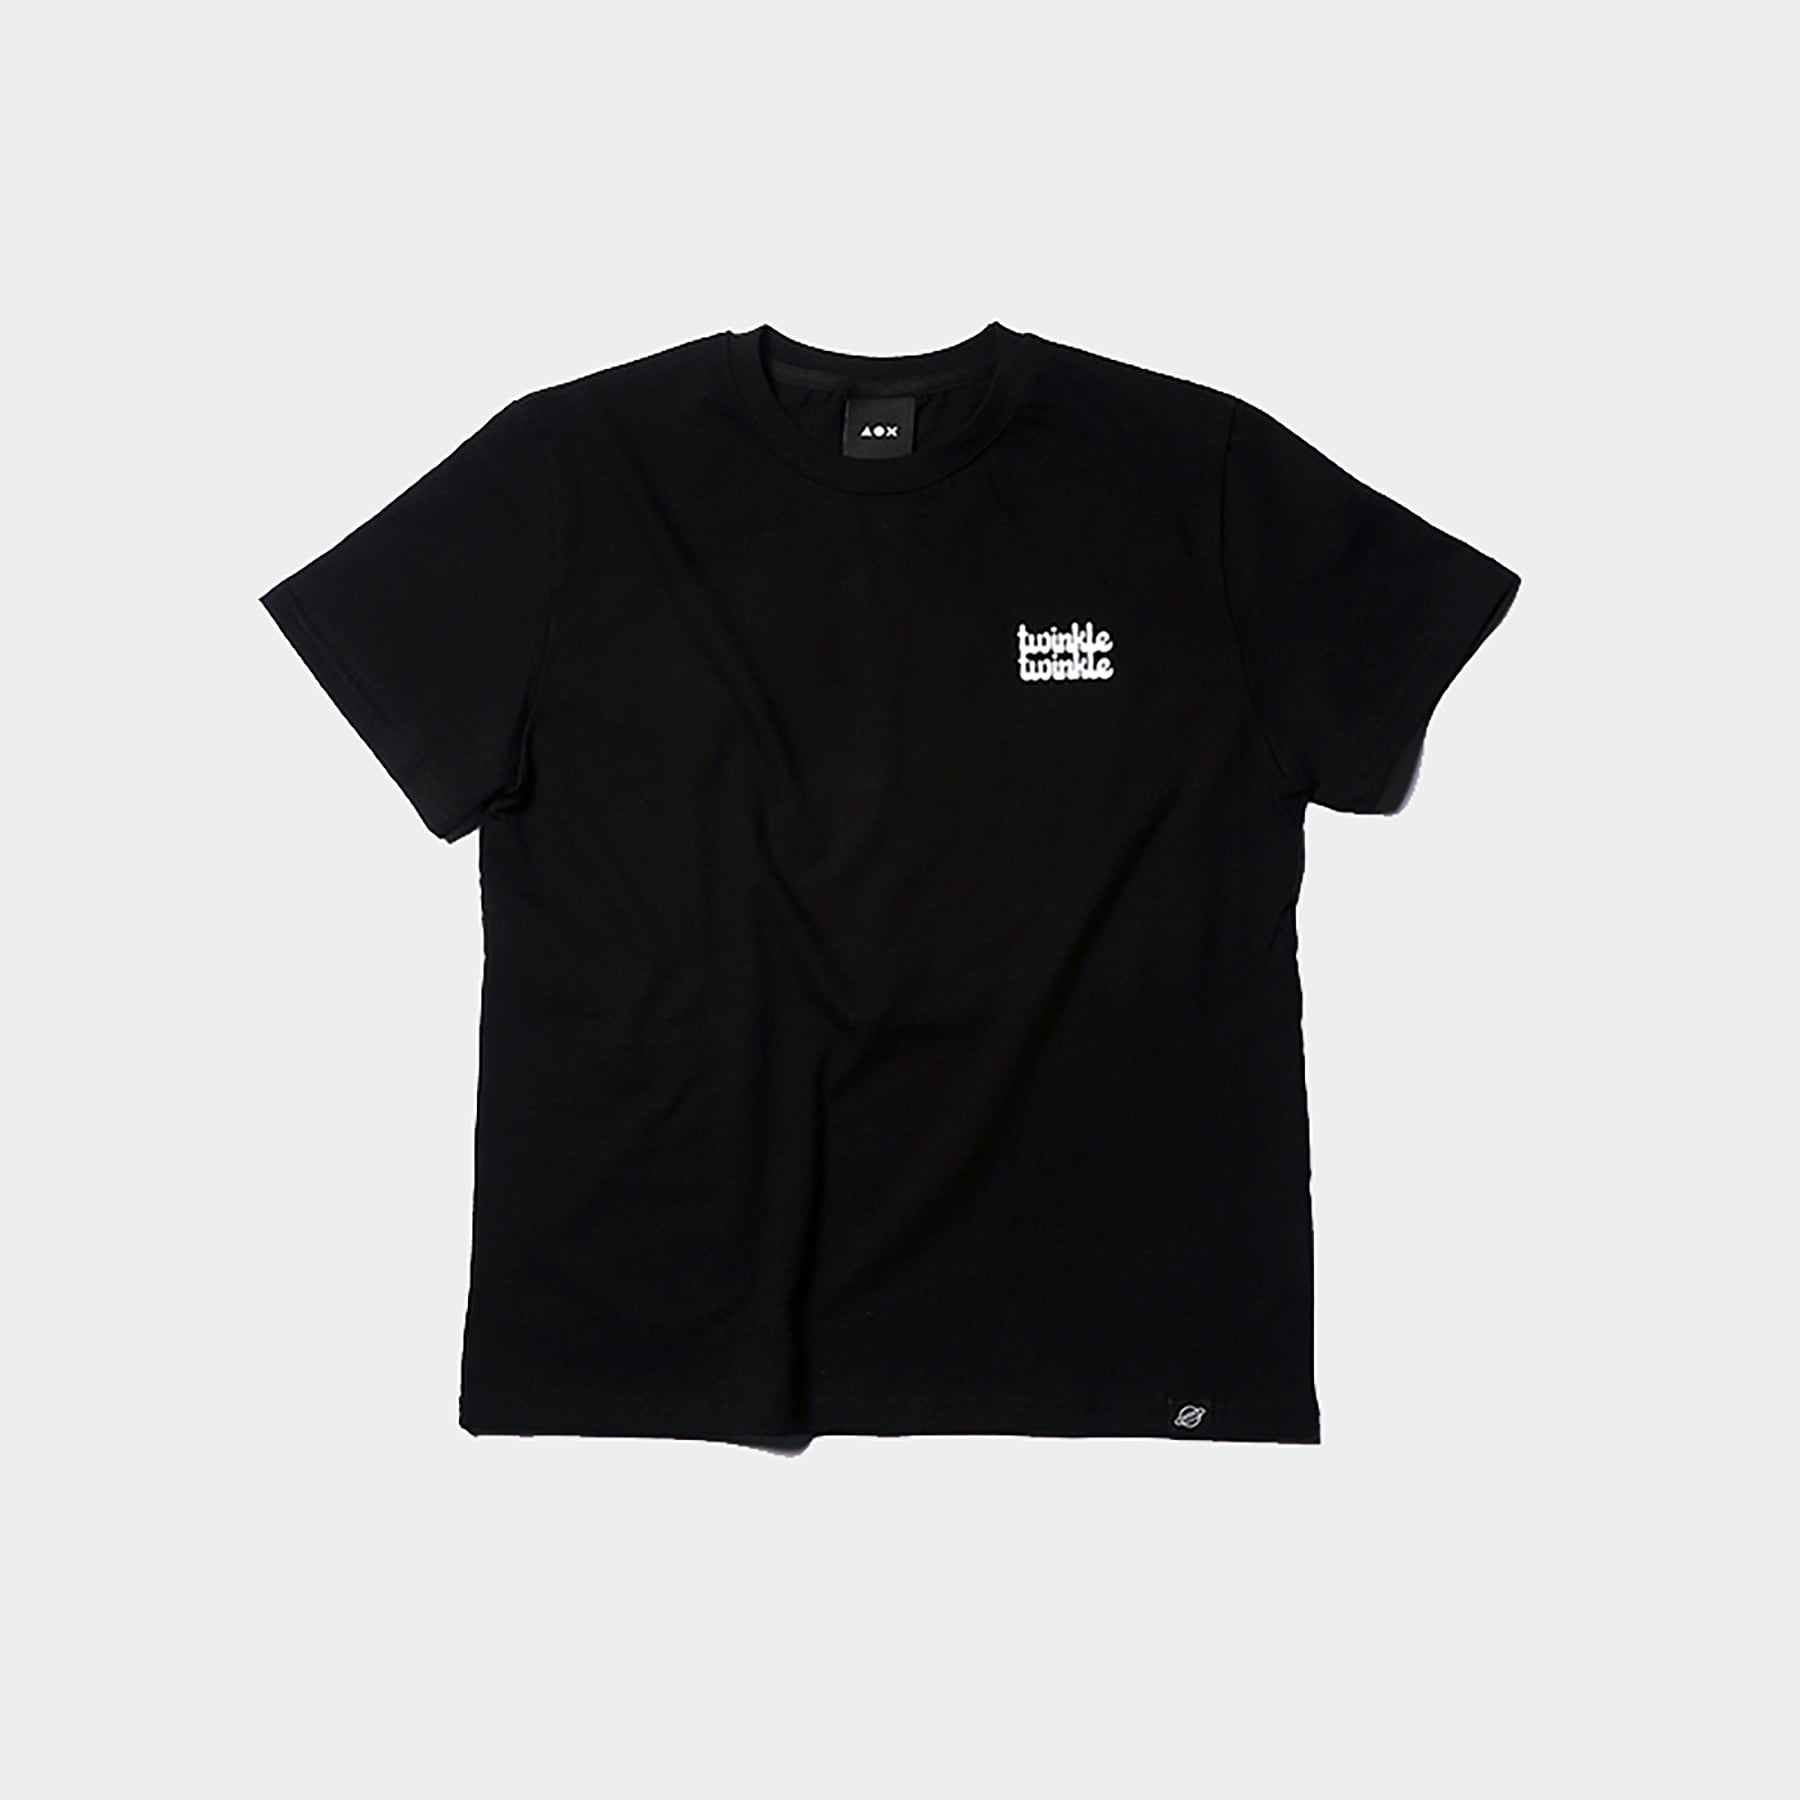 Twinkle point t-shirt (Black)